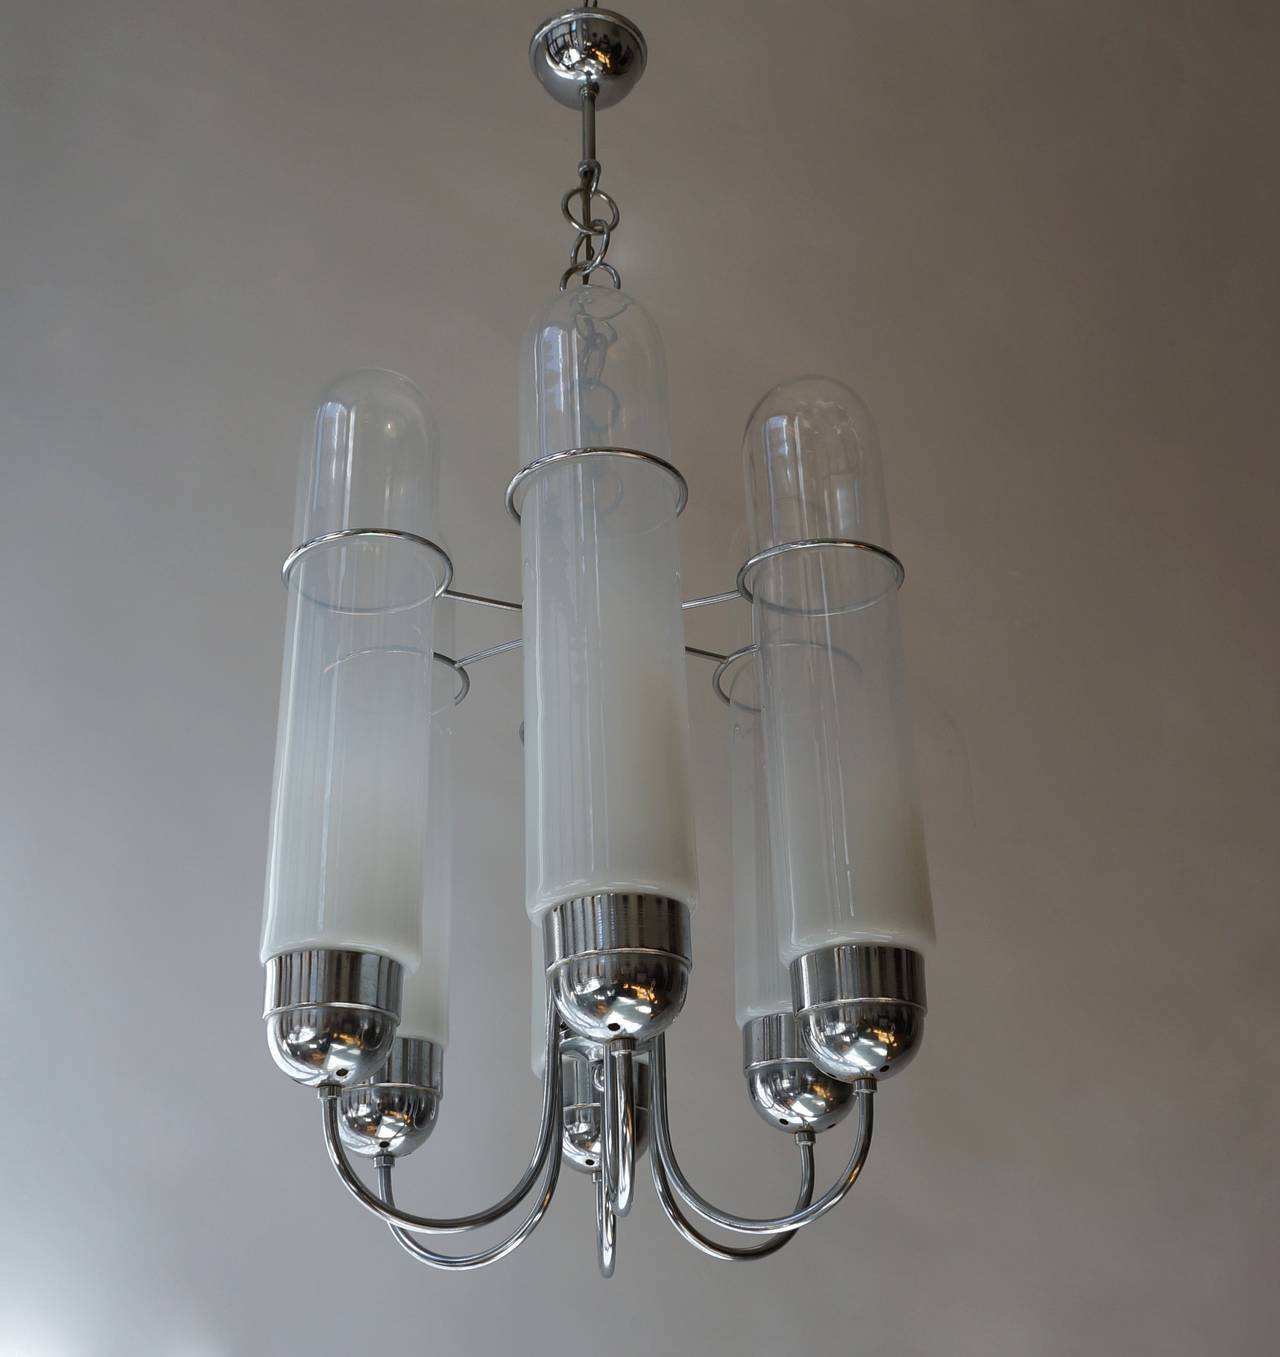 Aldo Nason for Mazzega Ceiling Fixture, Italy, 1960 In Good Condition For Sale In Antwerp, BE